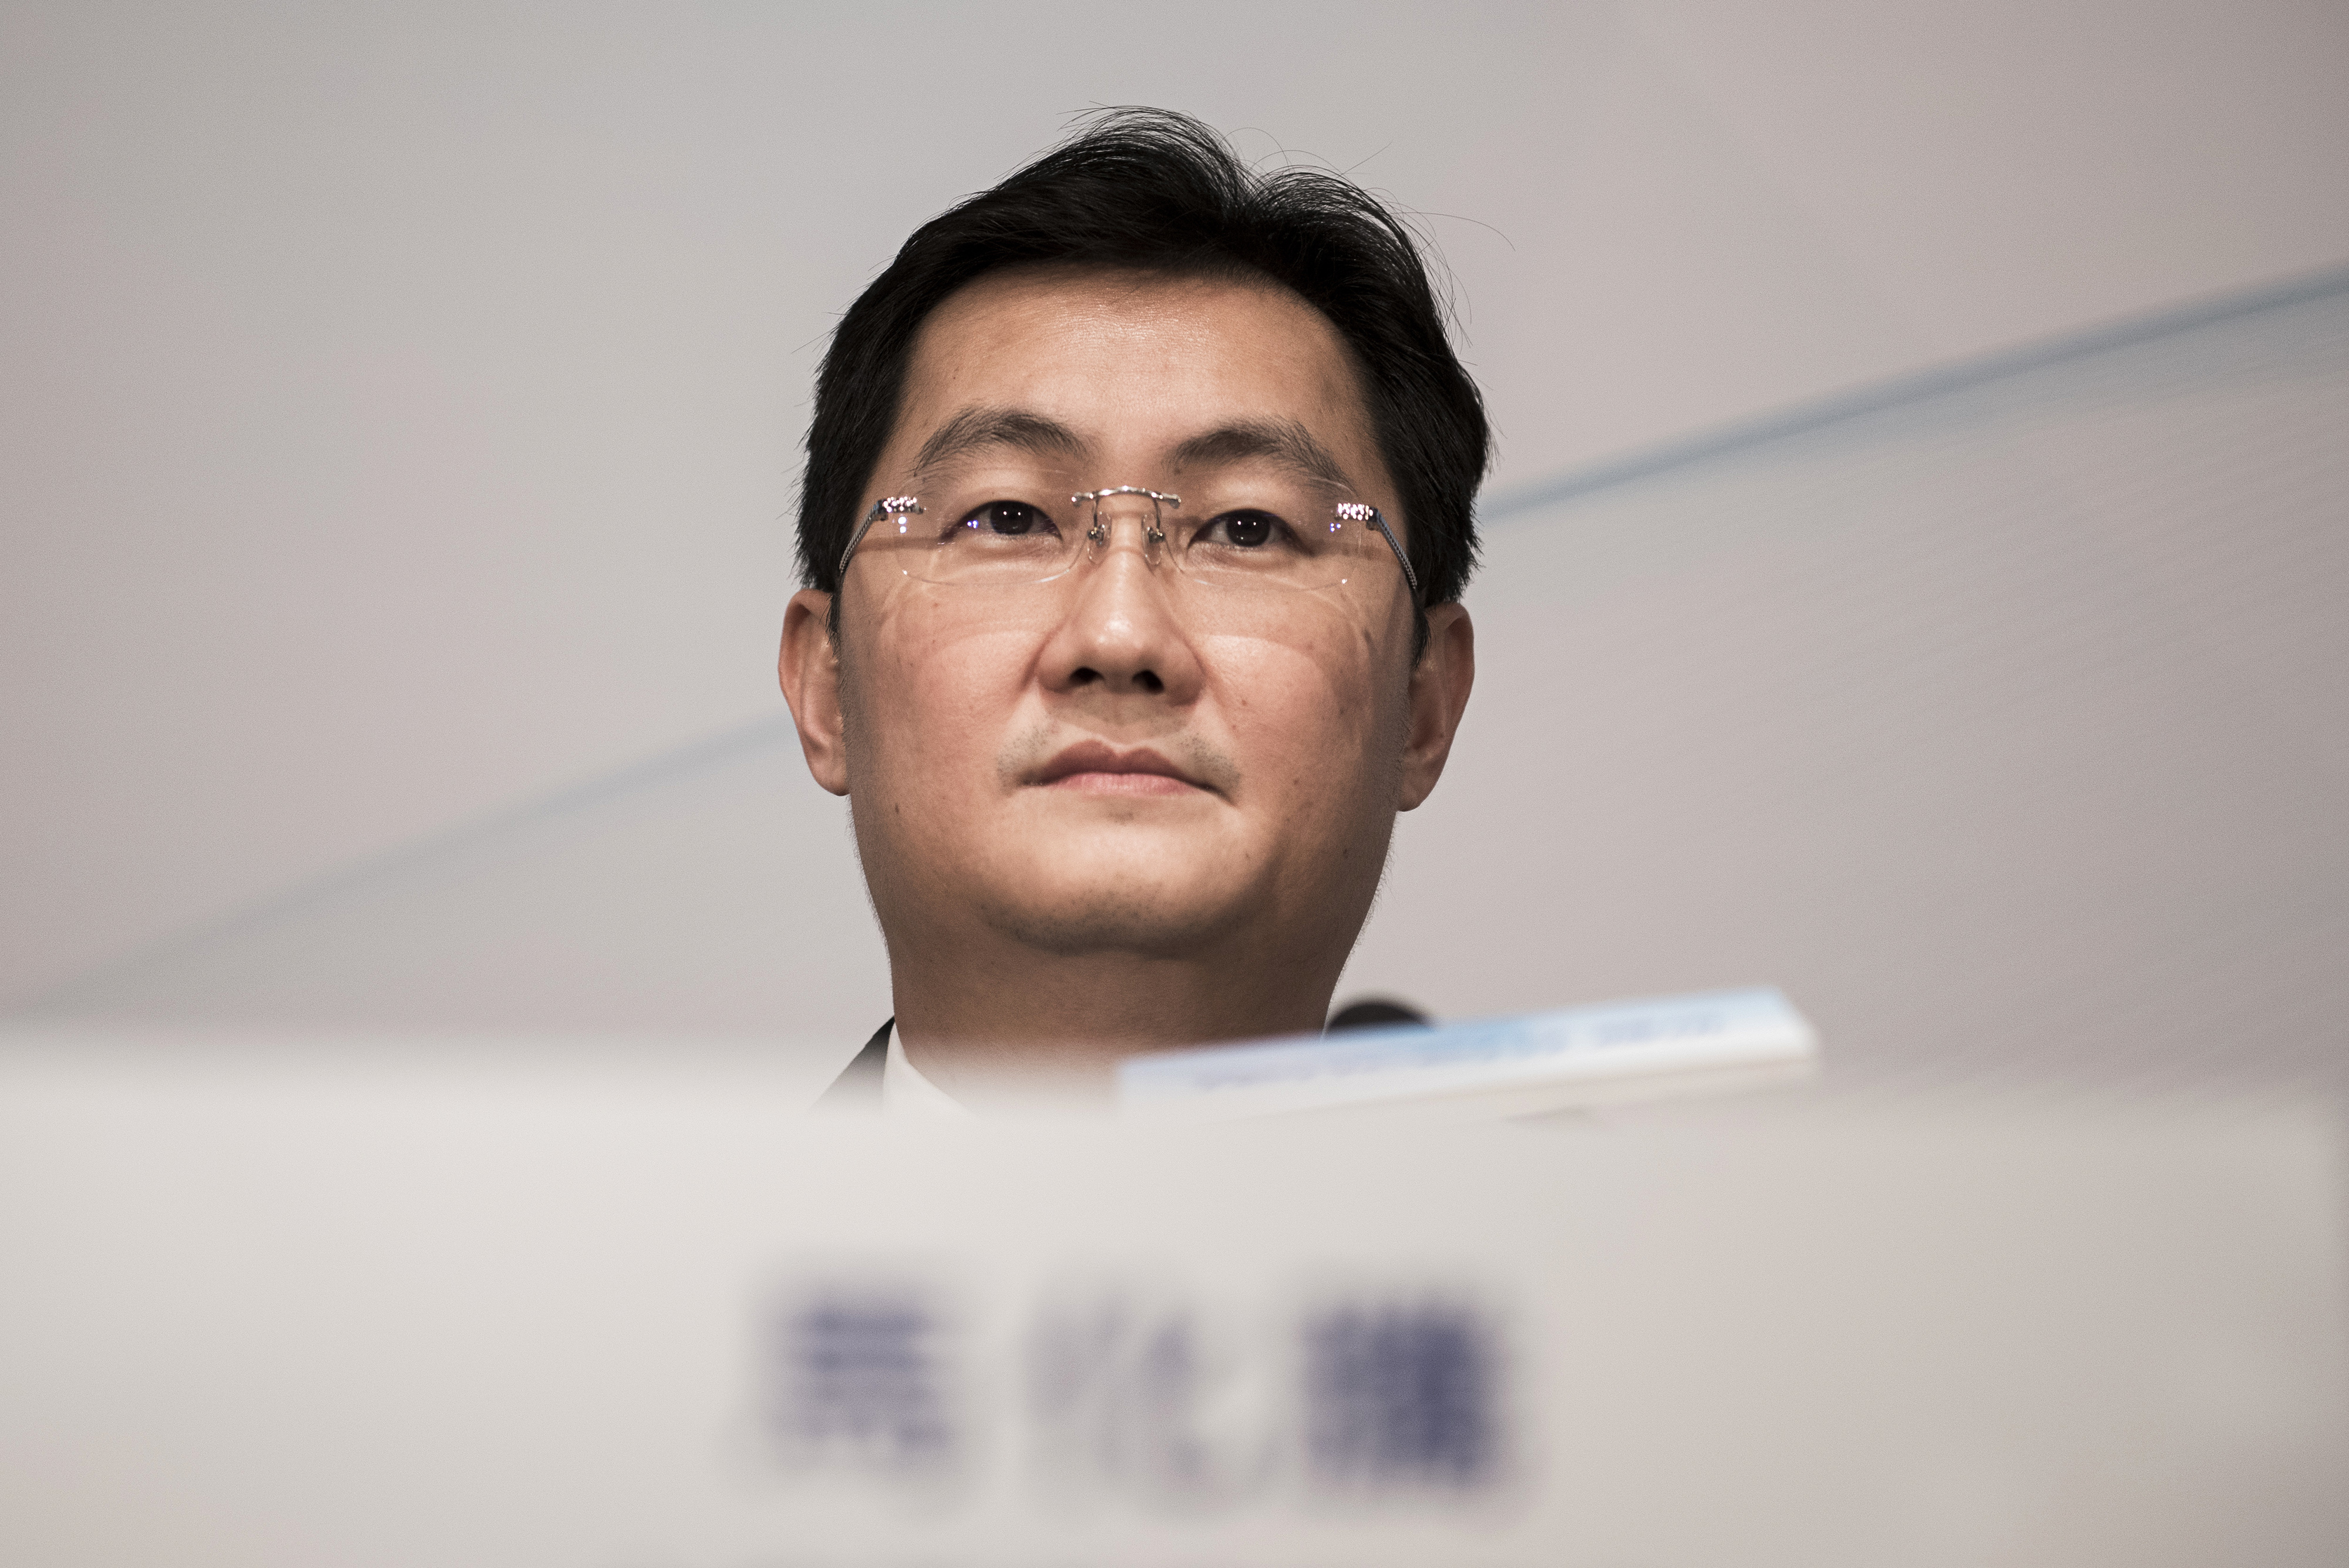 Tencent Holdings Ltd. Chairman And Chief Executive Officer Ma Huateng Attends Annual Earnings Conference